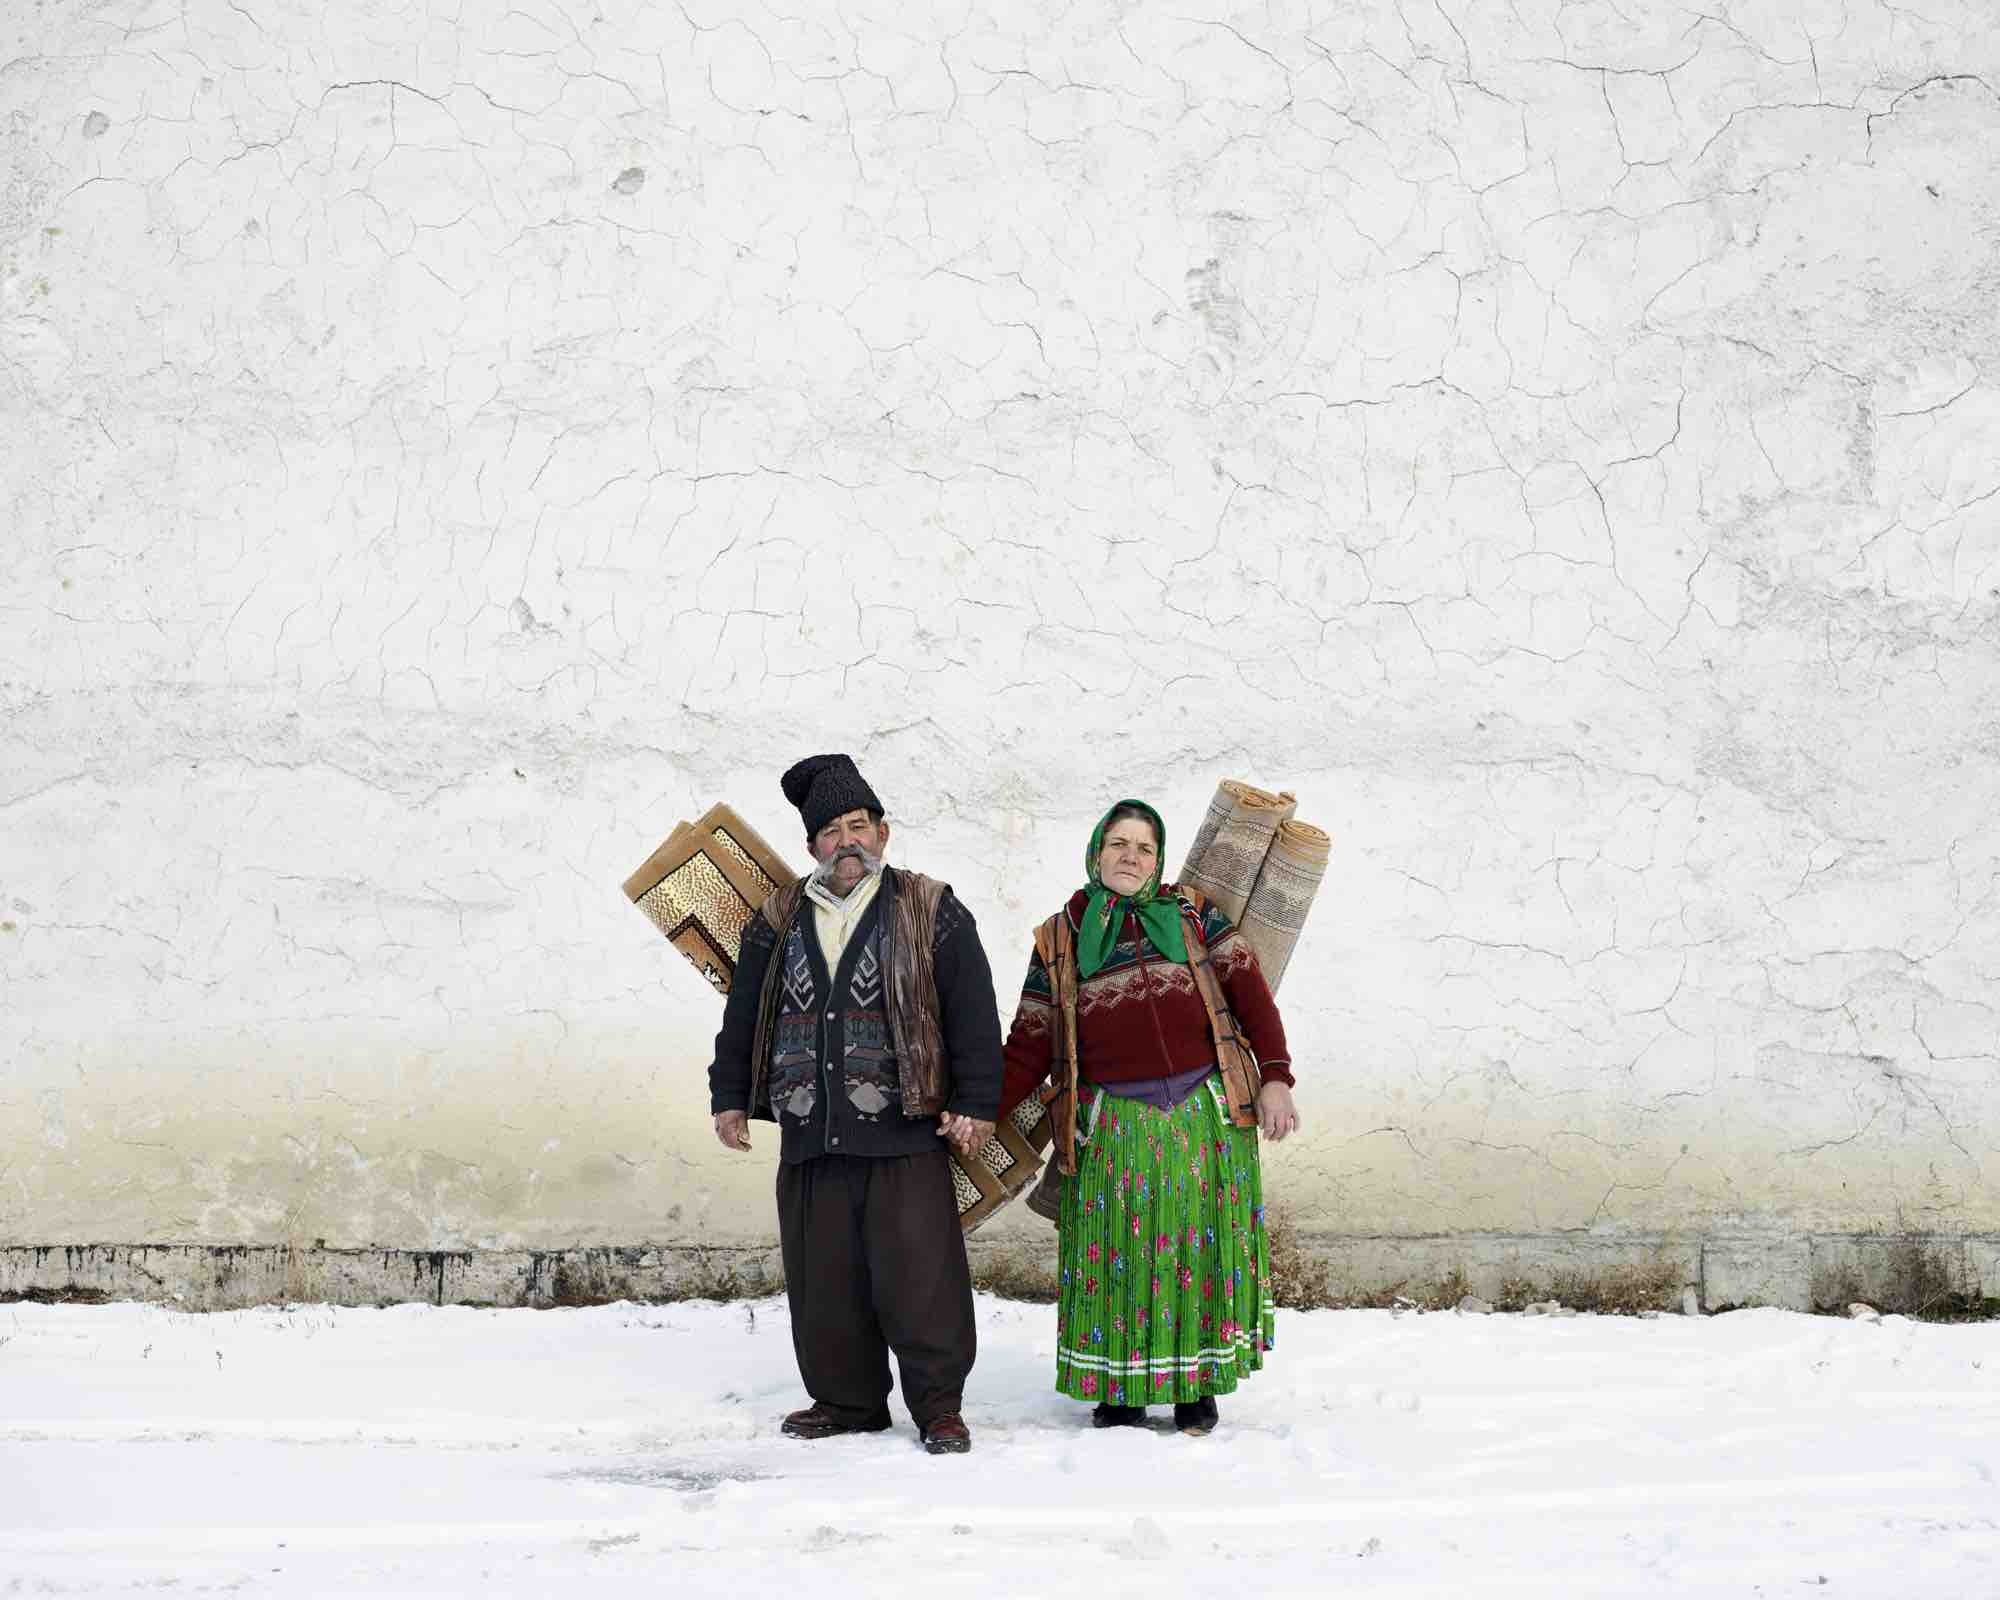 Carpet Sellers (Pojorata, North Romania), 2012 © Tamas Dezso. Courtesy of The Photographers' Gallery.